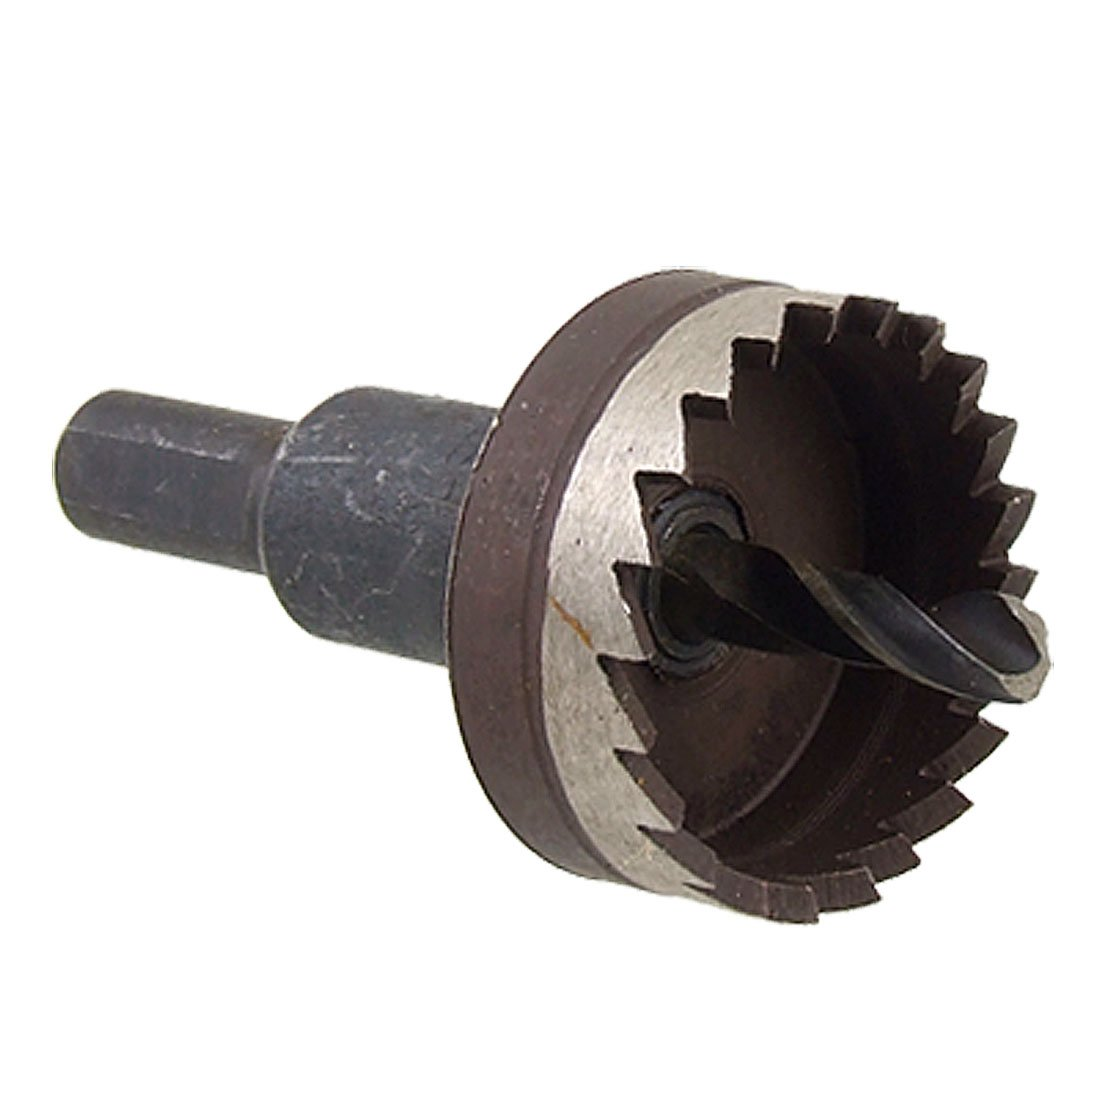 Подробнее о Cast Iron Cutting 35mm HSS Hole Saw Twist Drill Bit uxcell hss 30mm diameter iron cutting twist drill bit hole saw 65mm length